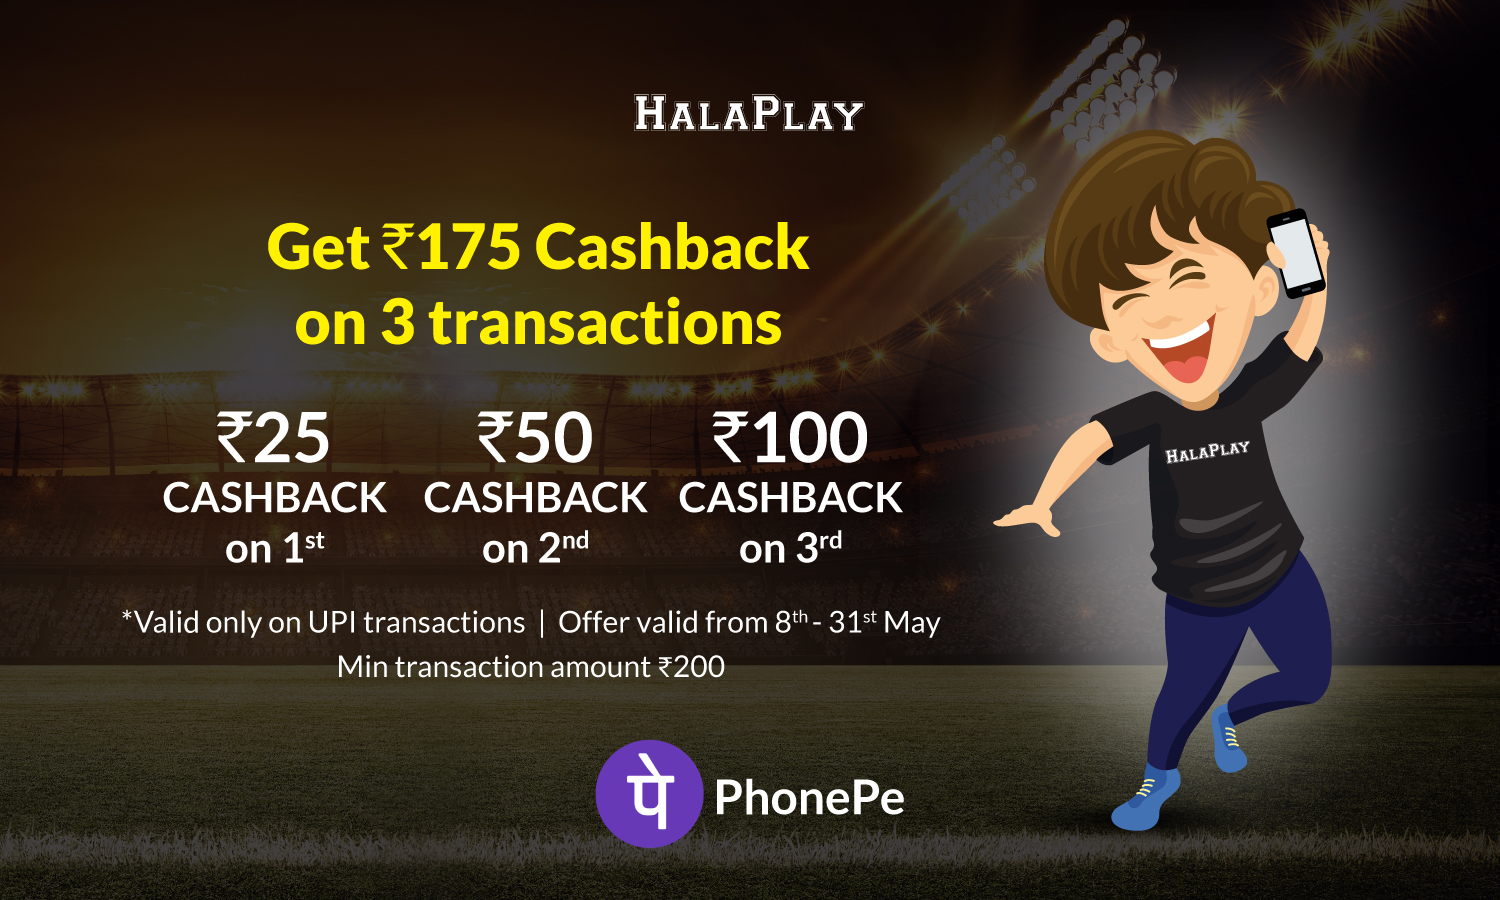 PhonePe Deposit Offer for HalaPlay